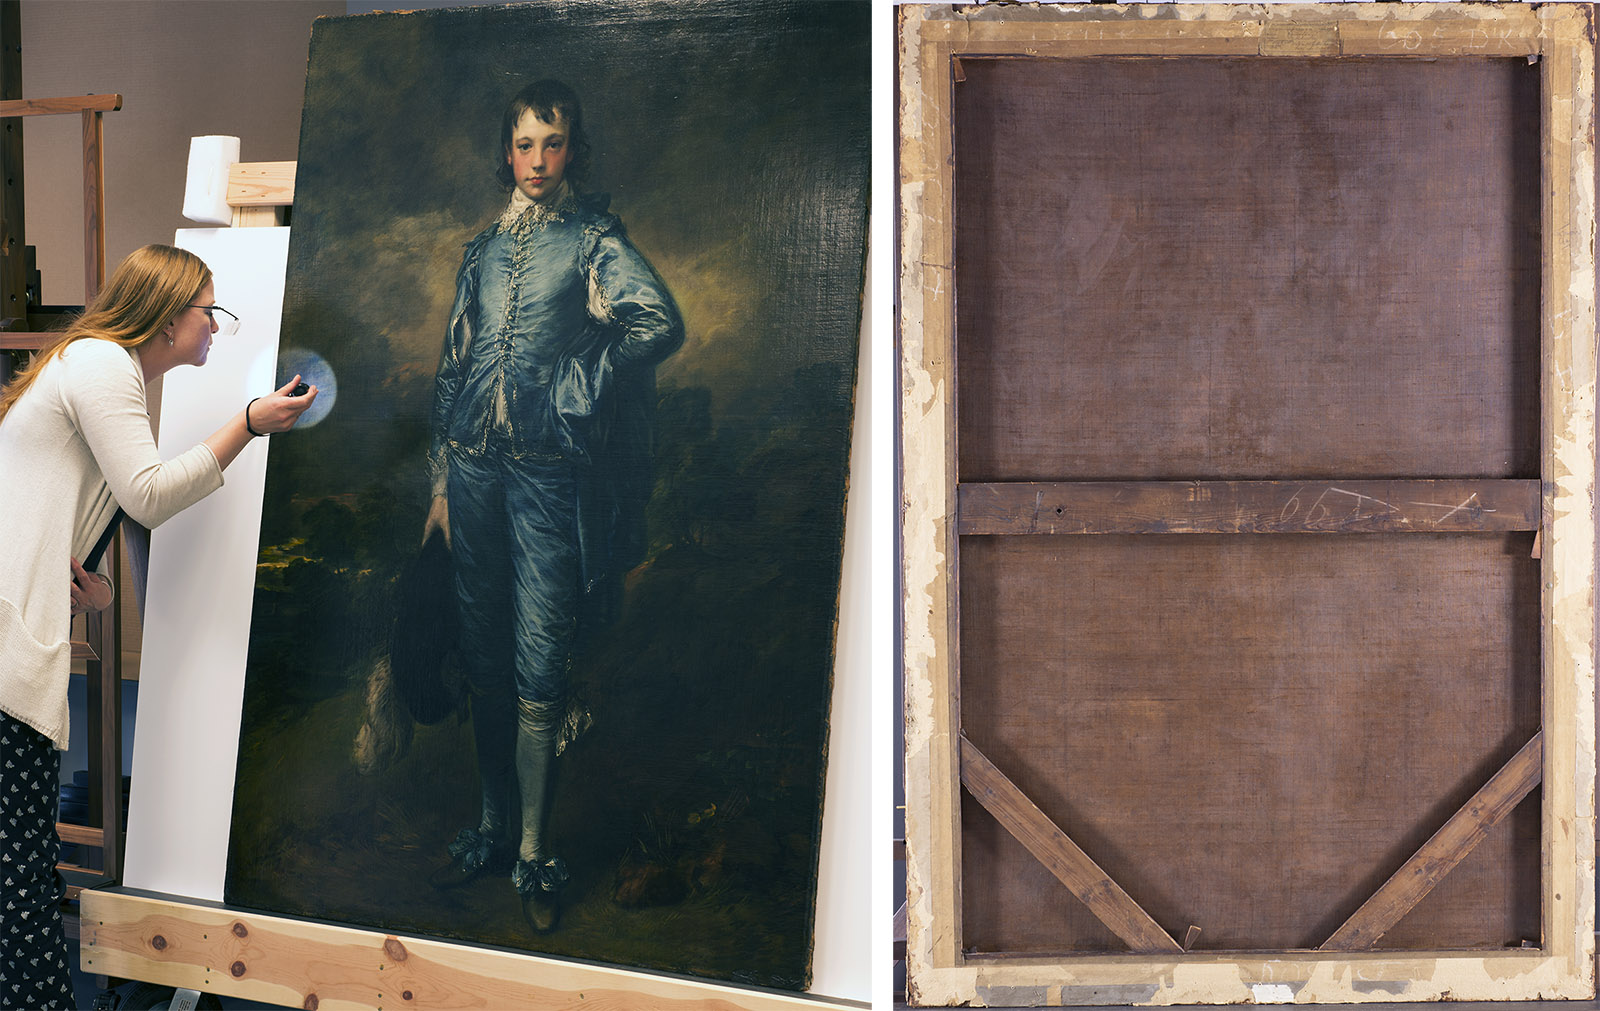 On the left a woman wearing magnifying glasses and holding a flashlight examines the surface of a painting of a boy dressed in a luxurious blue suit. On the right is the brown backside of the canvas and its scratched wooden frame.